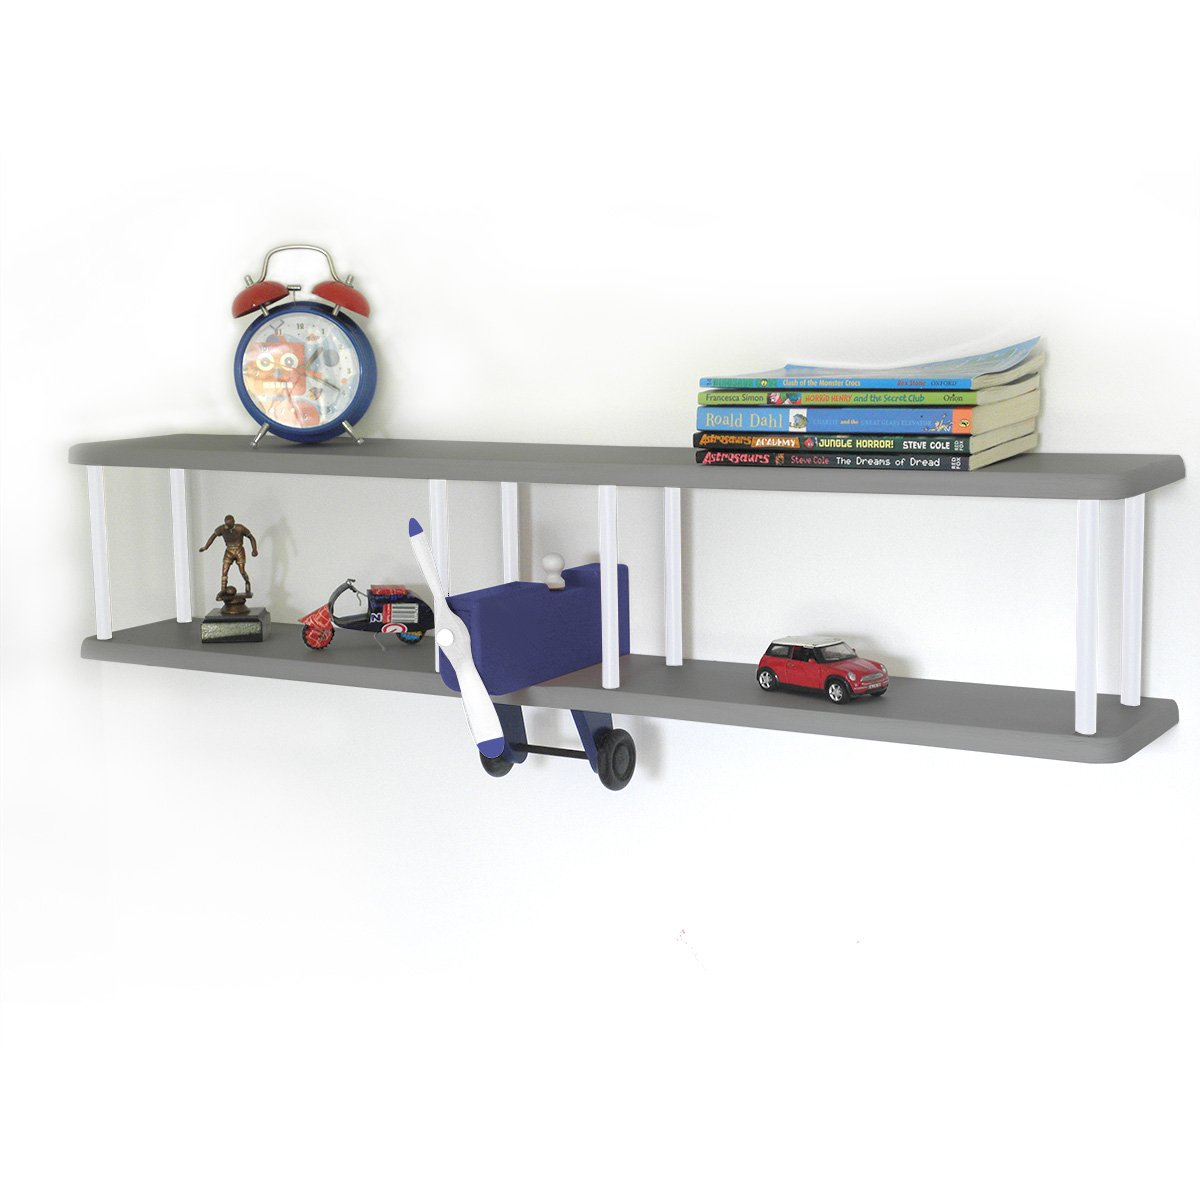 Bi-Plane Wall Shelf - Grey/Navy/White